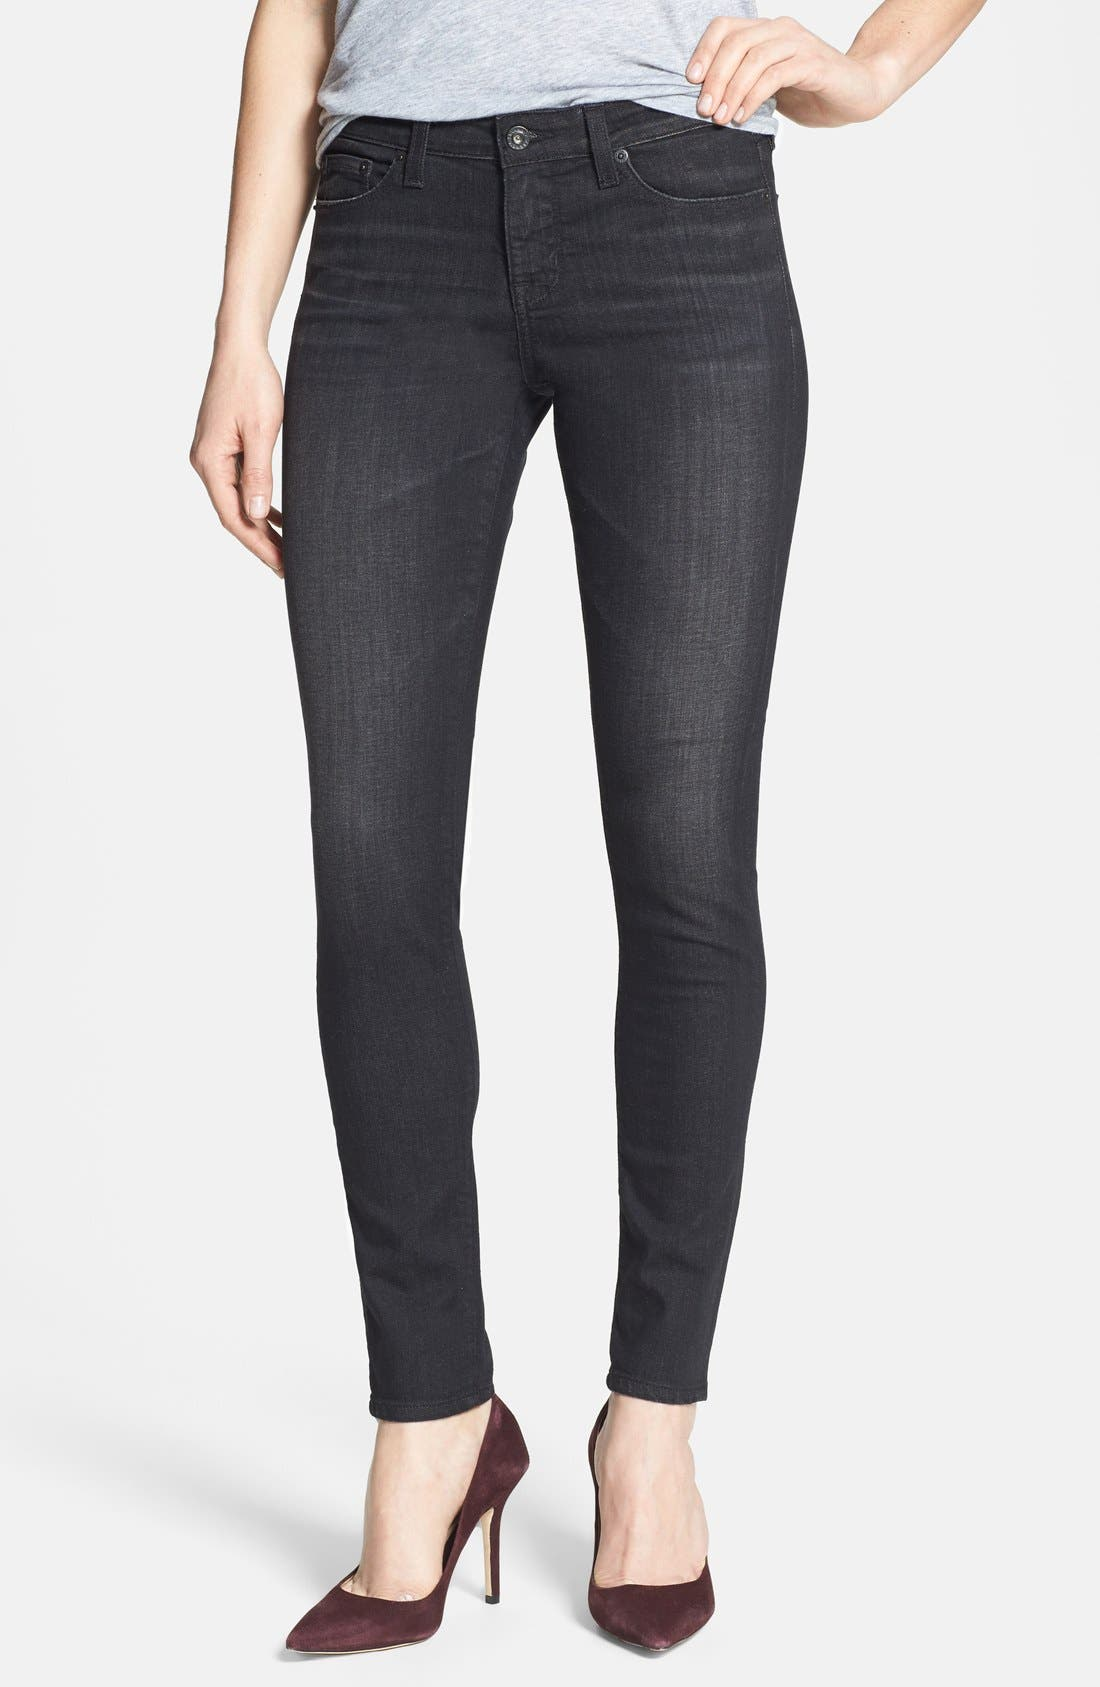 Alternate Image 1 Selected - Big Star 'Alex' Stretch Skinny Jeans (Aragon) (Petite)